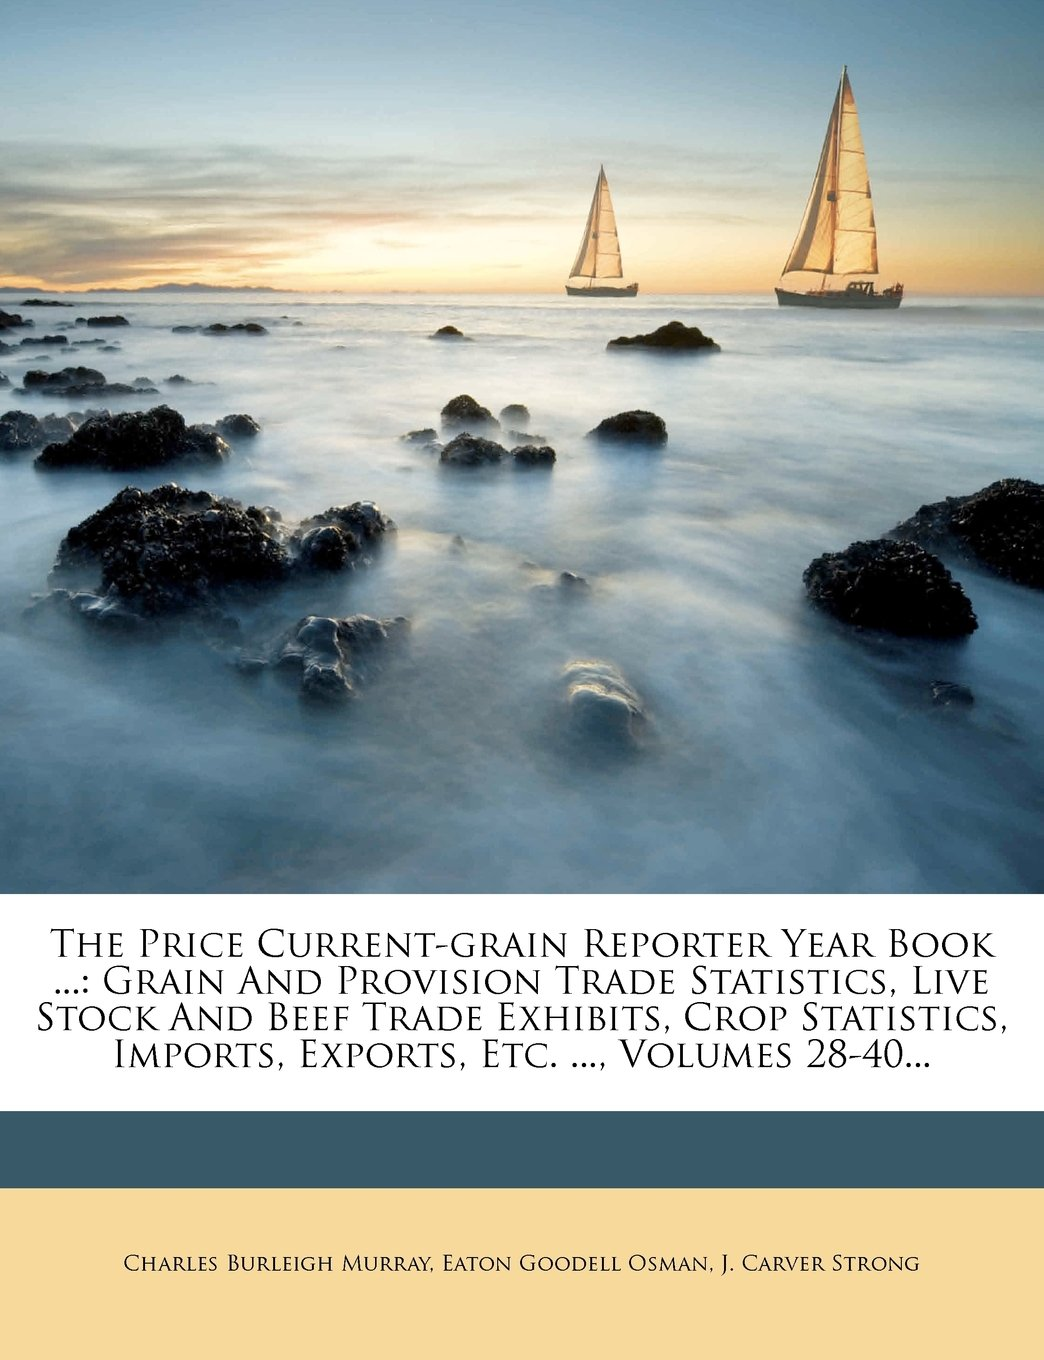 Download The Price Current-grain Reporter Year Book ...: Grain And Provision Trade Statistics, Live Stock And Beef Trade Exhibits, Crop Statistics, Imports, Exports, Etc. ..., Volumes 28-40... pdf